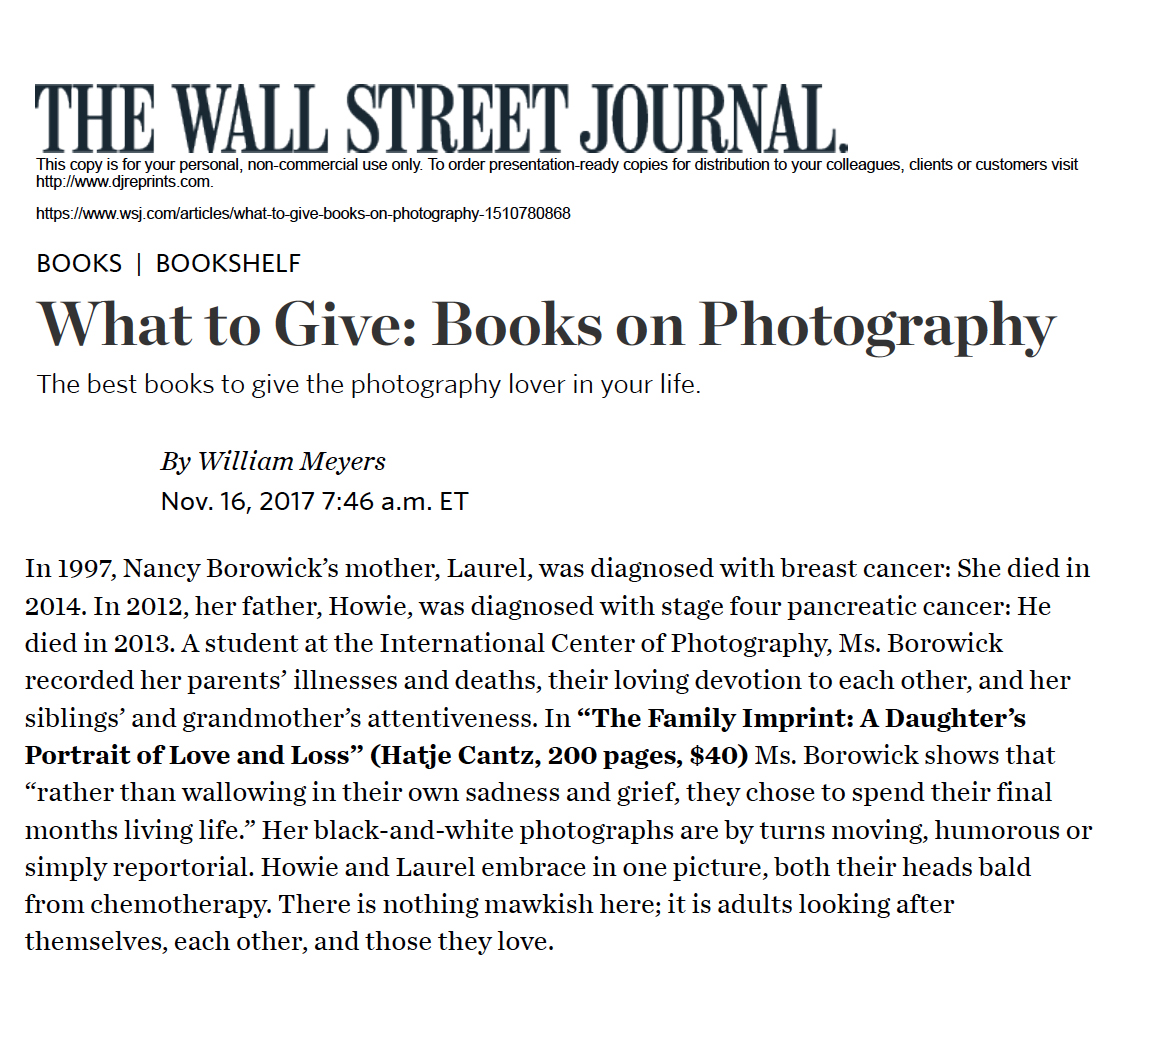 The Family Imprint has its first international newspaper book review in the Wall Street Journal. Whoa! What an honor to be inluded in this photography book gift guide! Read it here.